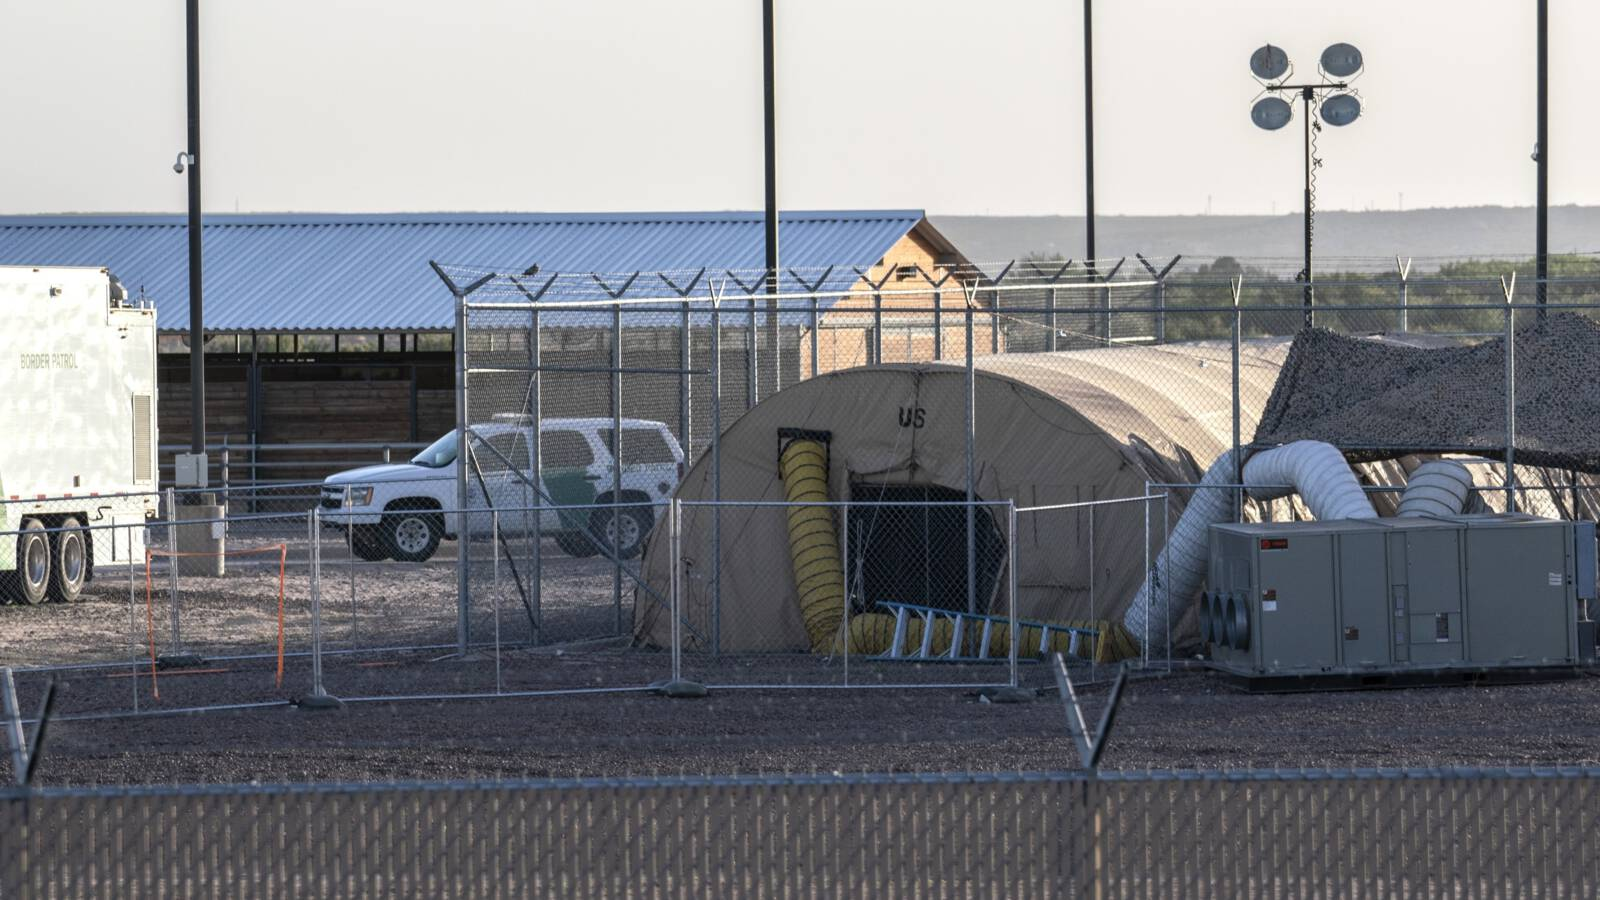 The children's jail near El Paso, Texas, USA. AFP photo